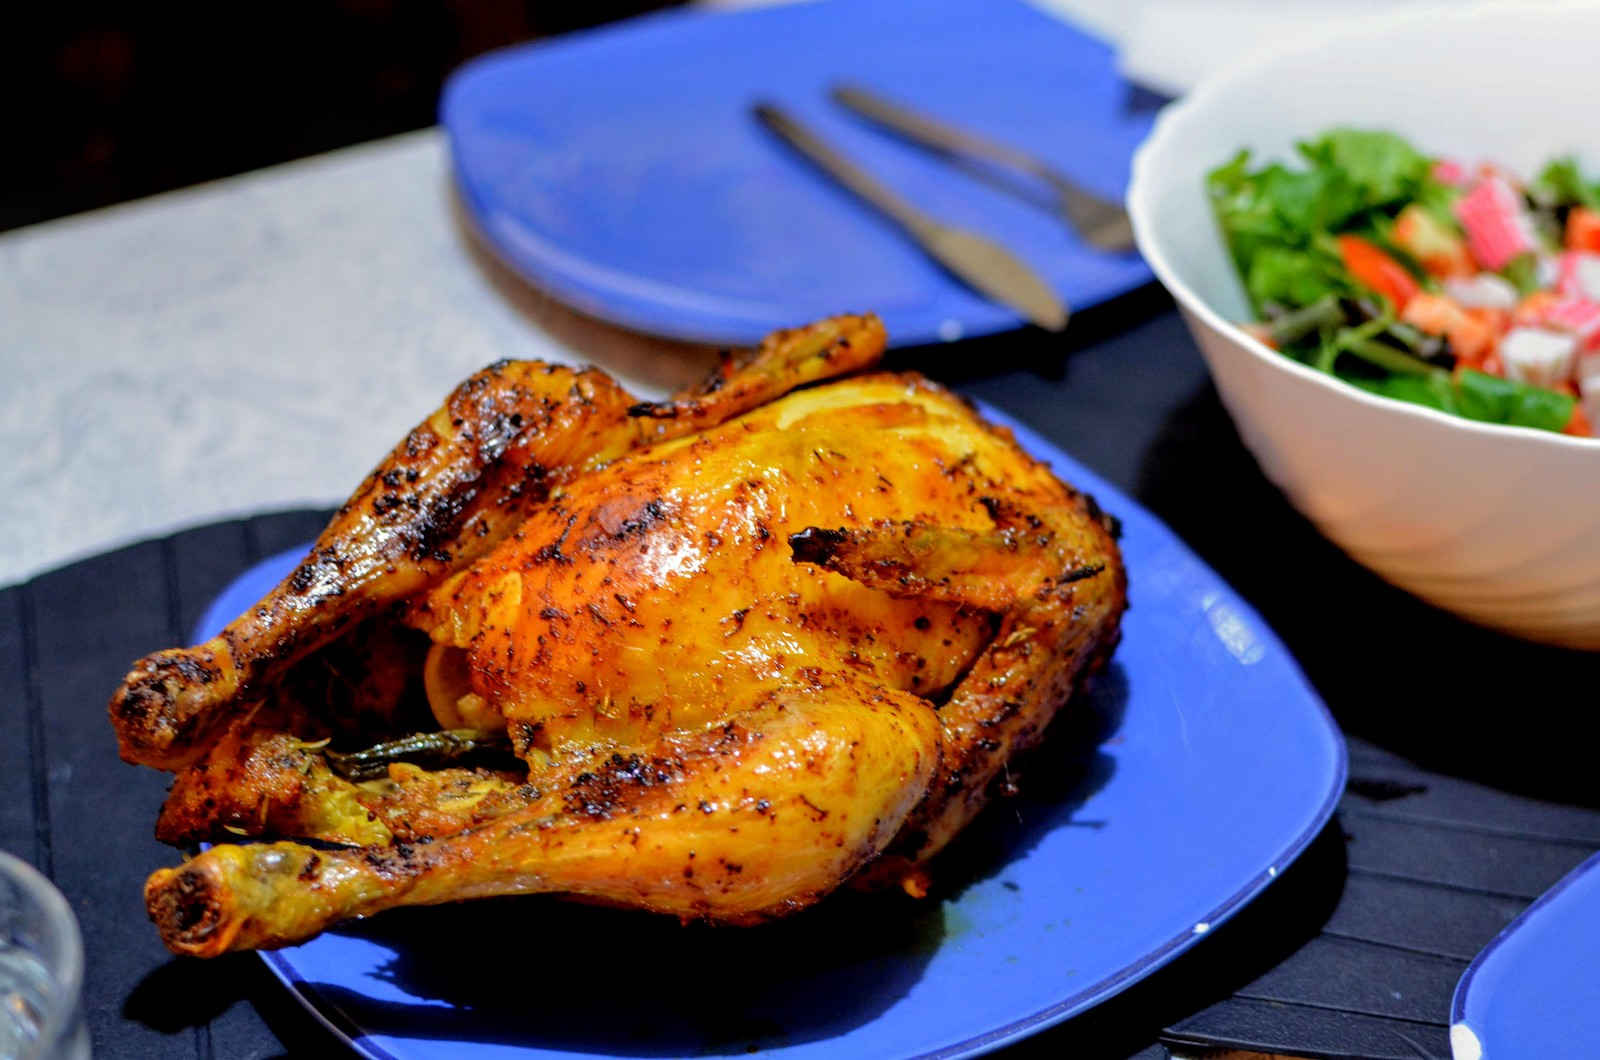 Roasted chicken with vegetable salad